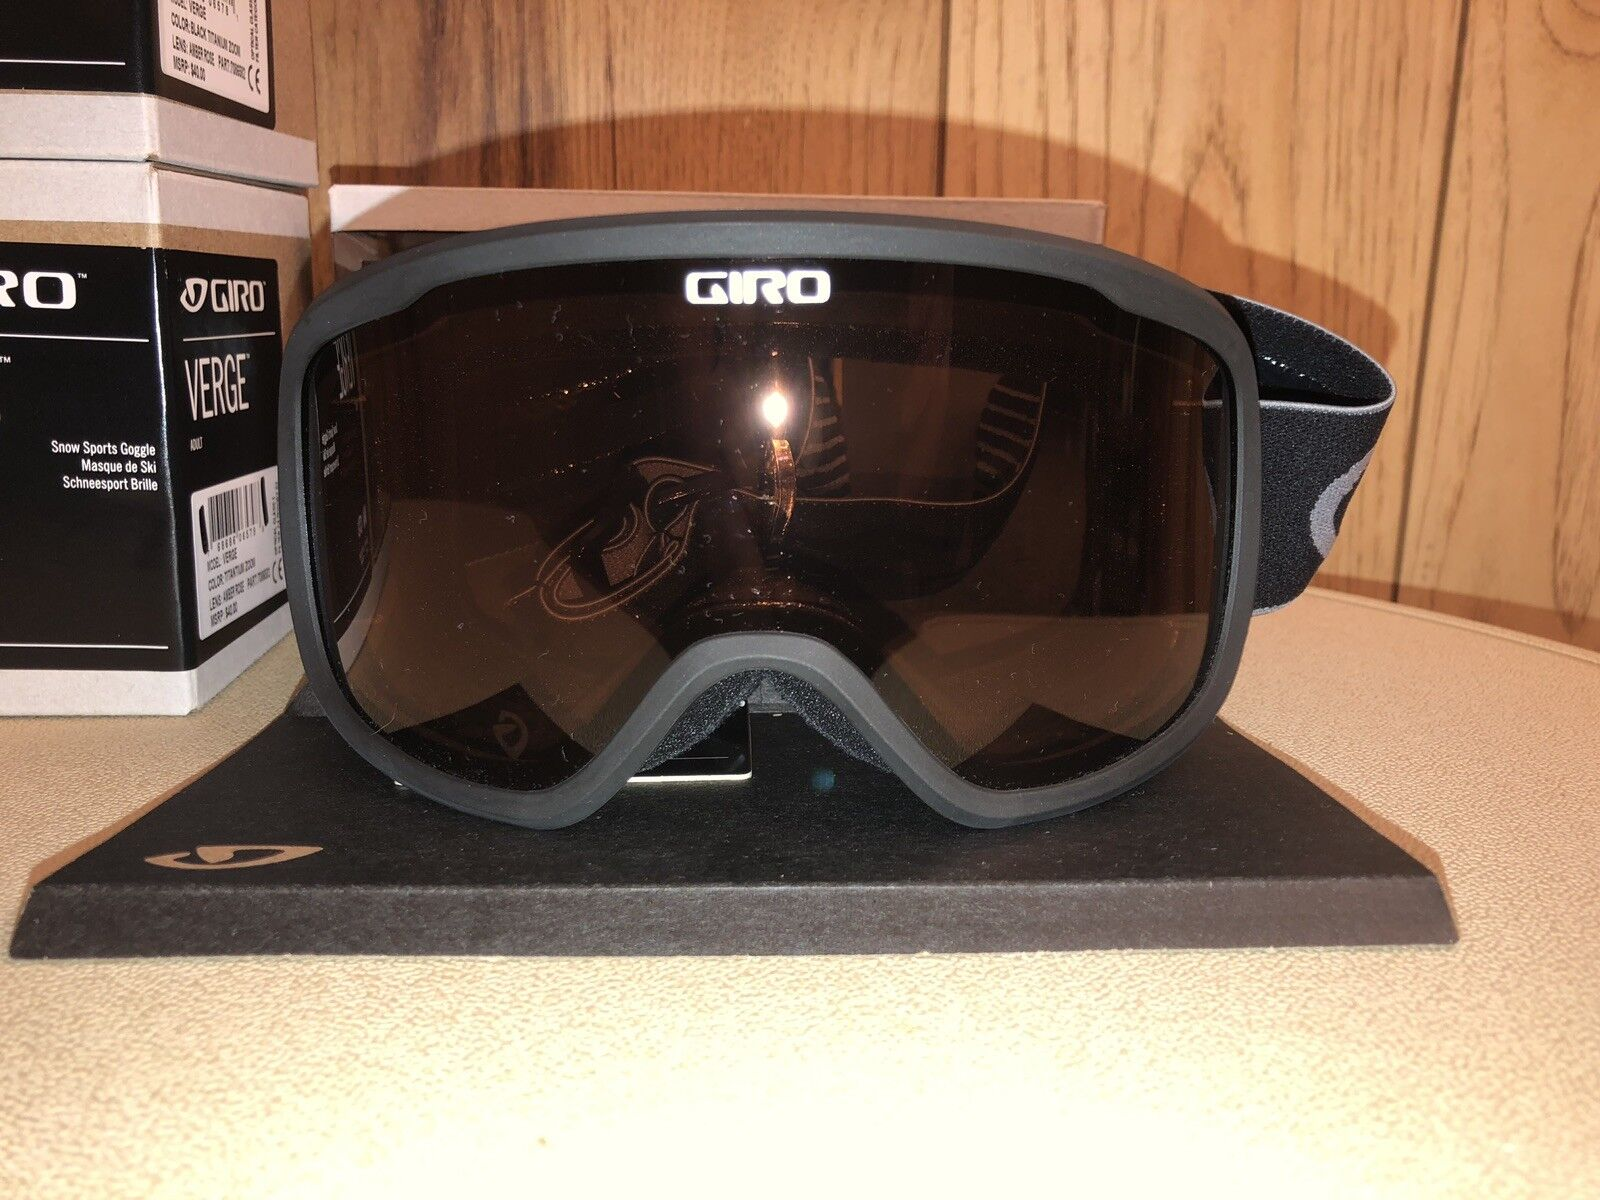 GIRO Verge Snow Sports Goggles